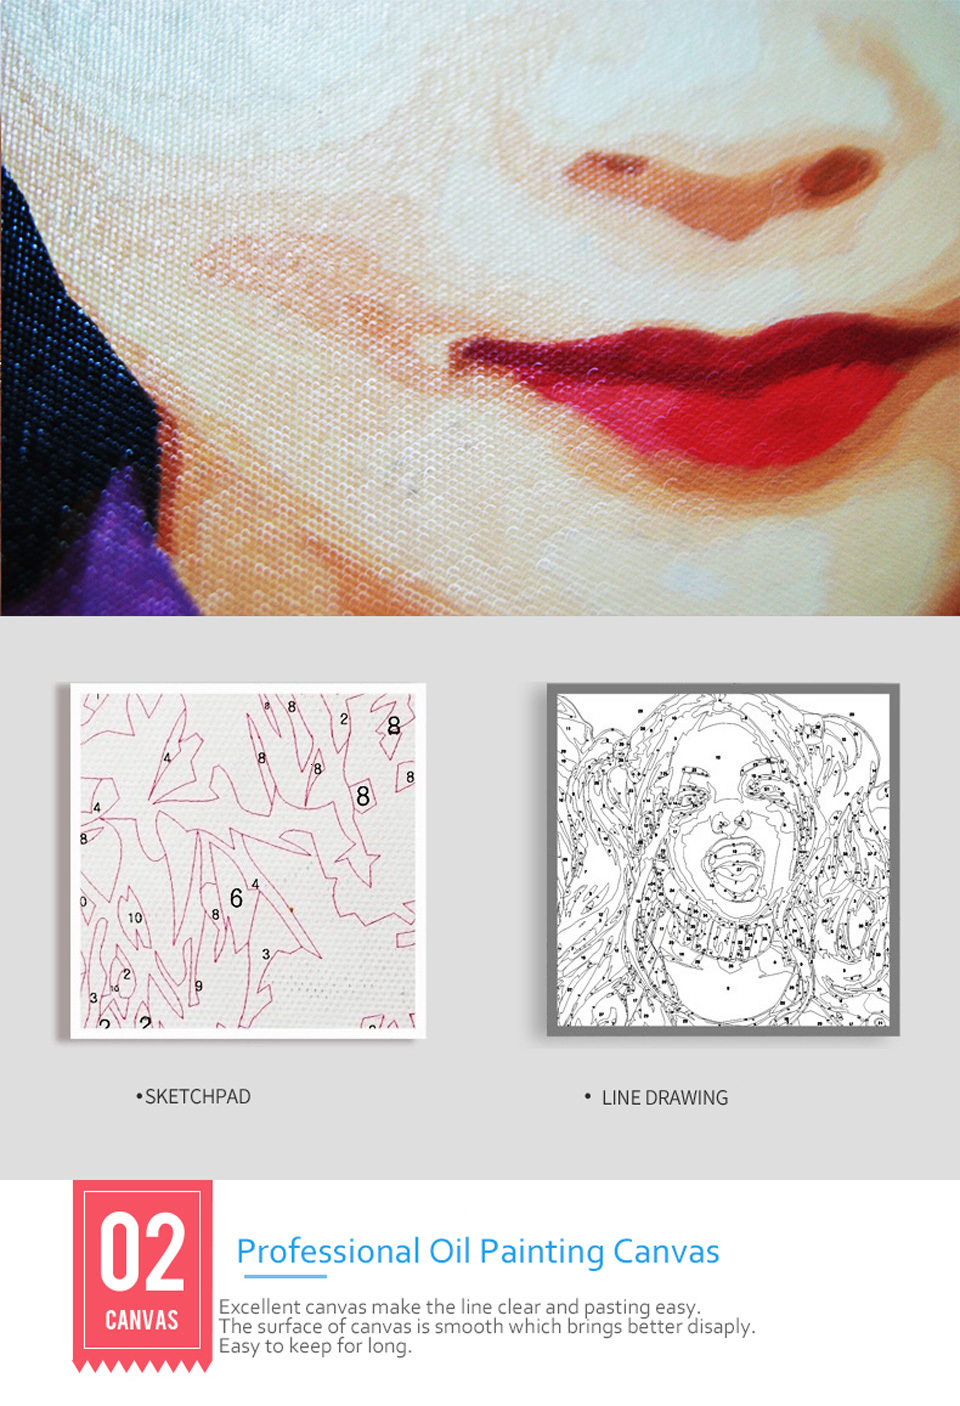 Hd9d46ee57f204a21bc51bfe271e2eba0H Personality Photo Customized DIY Oil Paint Paintings By Numbers Picture Drawing by Numbers Canvas Coloring by Numbers Acrylic